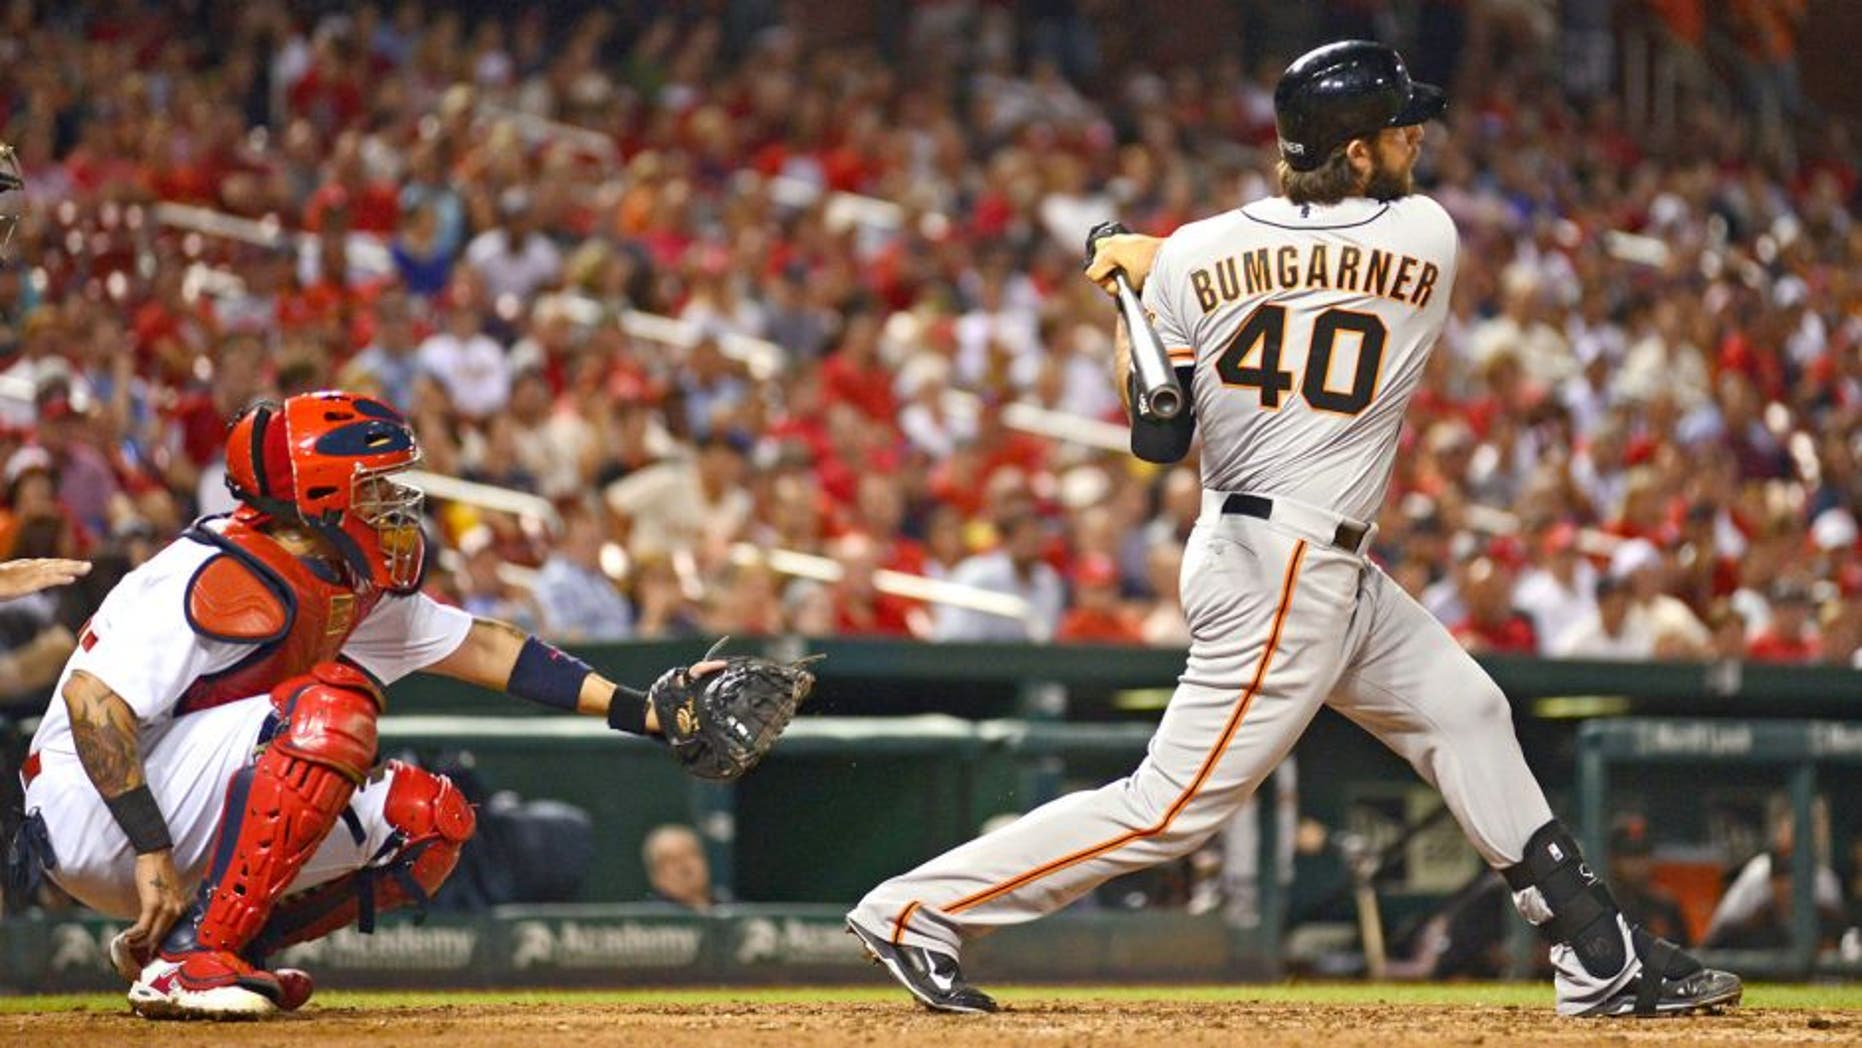 Aug 18, 2015; St. Louis, MO, USA; San Francisco Giants pinch hitter Madison Bumgarner (40) hit s a single off of St. Louis Cardinals starting pitcher Lance Lynn (not pictured) during the seventh inning at Busch Stadium. Mandatory Credit: Jeff Curry-USA TODAY Sports